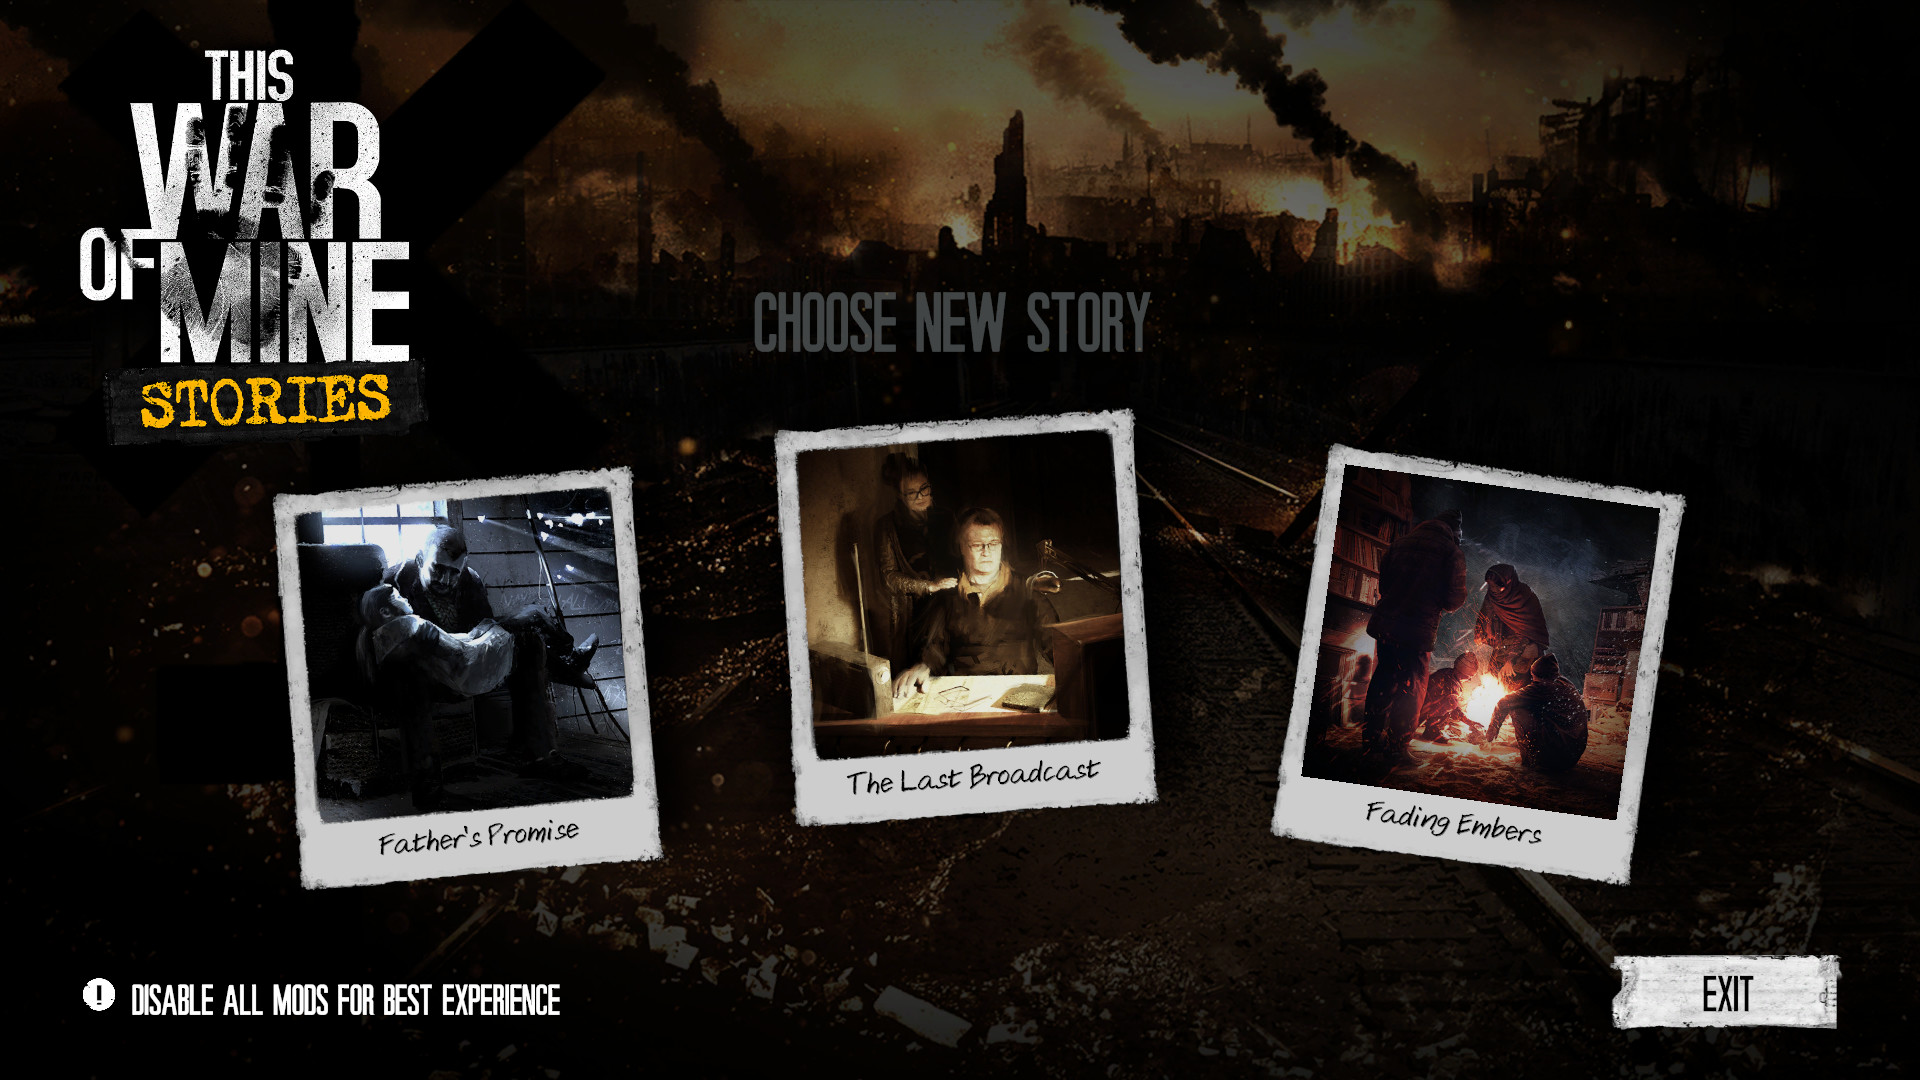 "From left to right are three DLCs, the left shows ""Father's promise"" with a father holding his daughter. The middle shows ""The Last Broadcast"" with a lady standing behind a man. The right shows ""Fading embers"" with a group of survivors gathering around a fire."